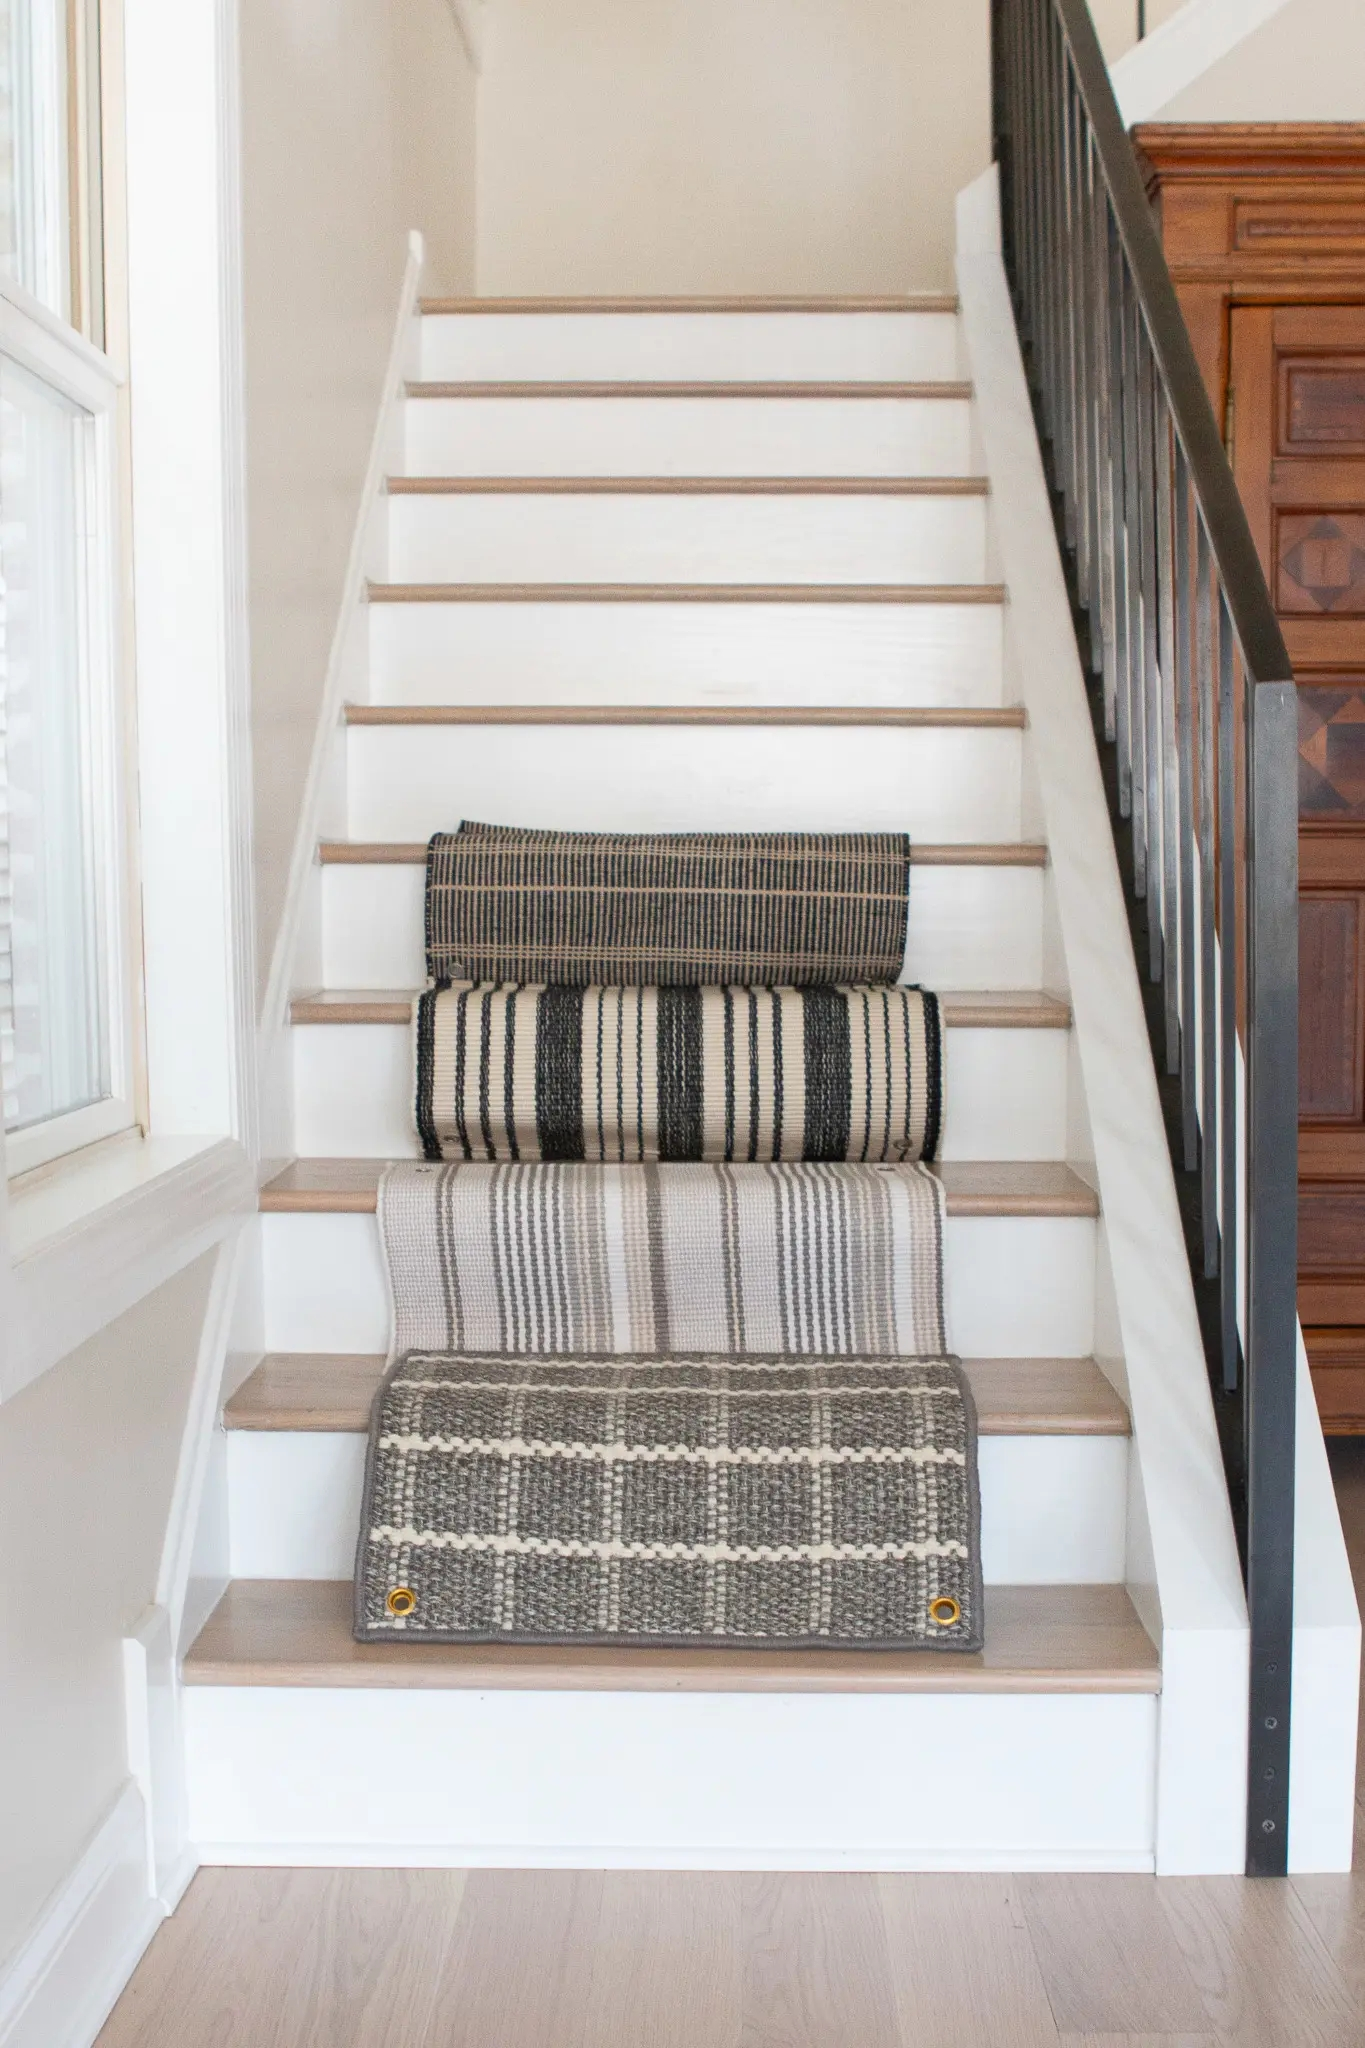 How To Install A Stair Runner On Hardwoods The Diy Playbook | Roll Runners For Stairs | Flooring | Carpet Stair Treads | Canyon Kazmir | Persian Garden | Area Rugs